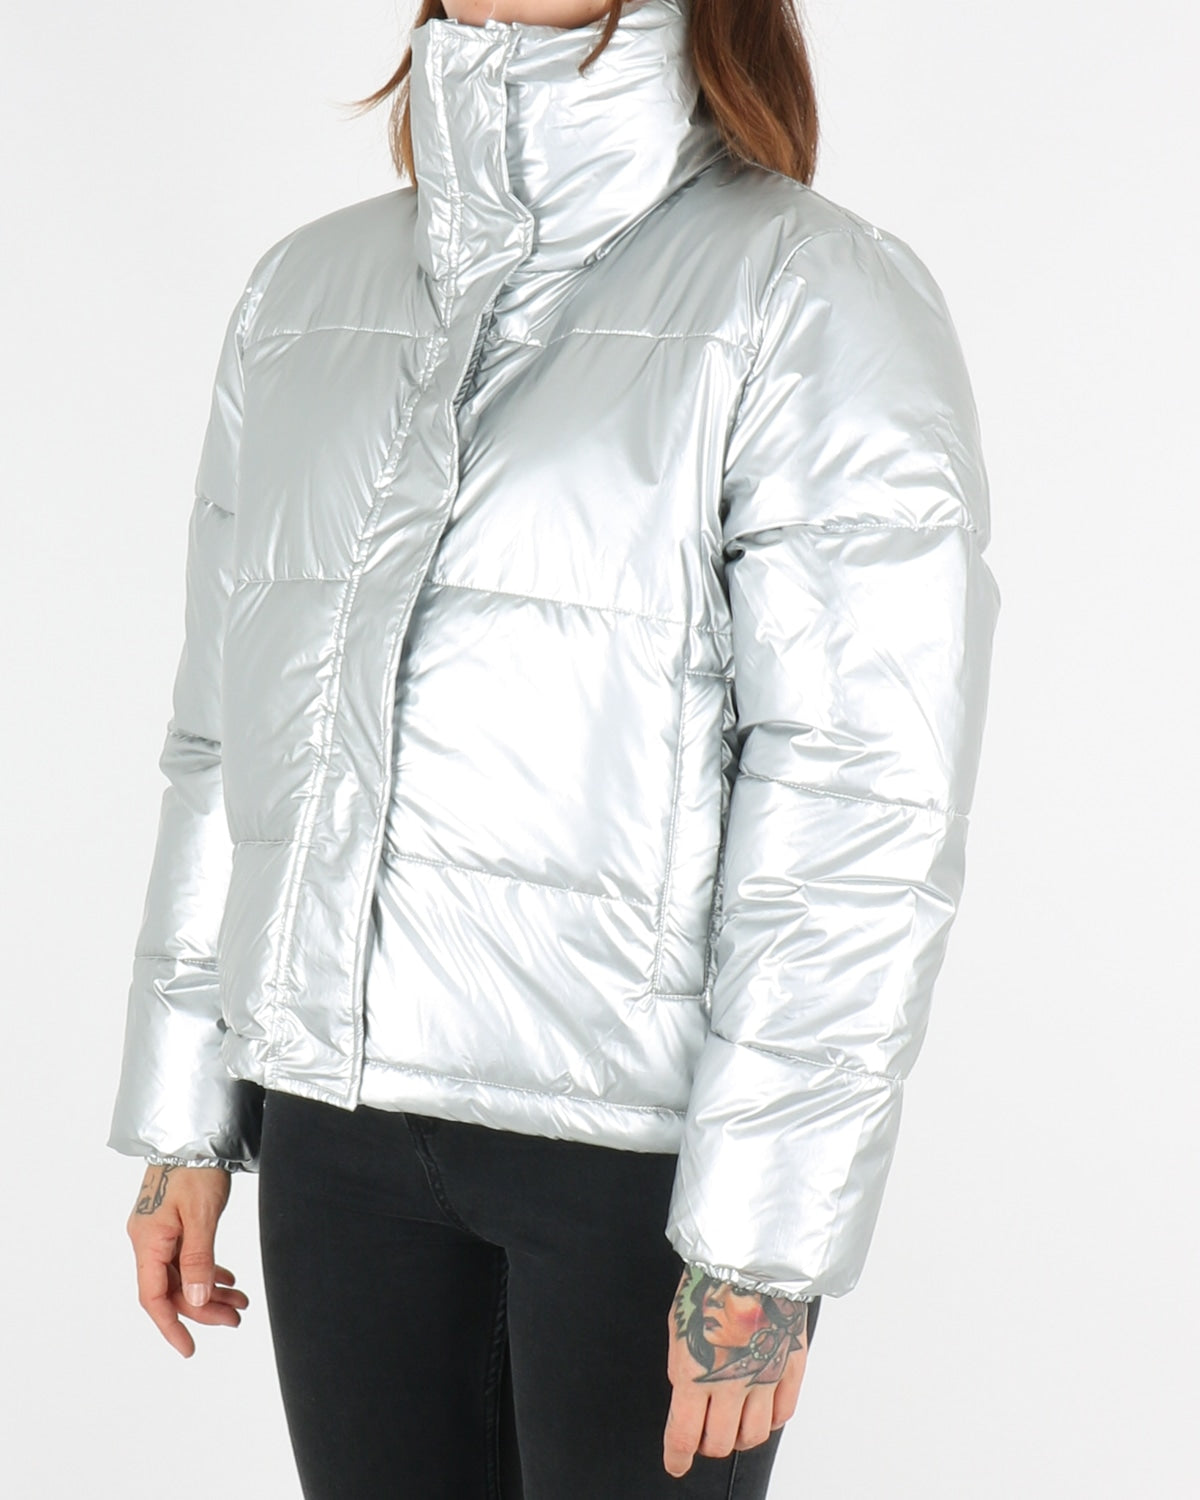 selfhood_puffer jacket 77126_silver_2_4